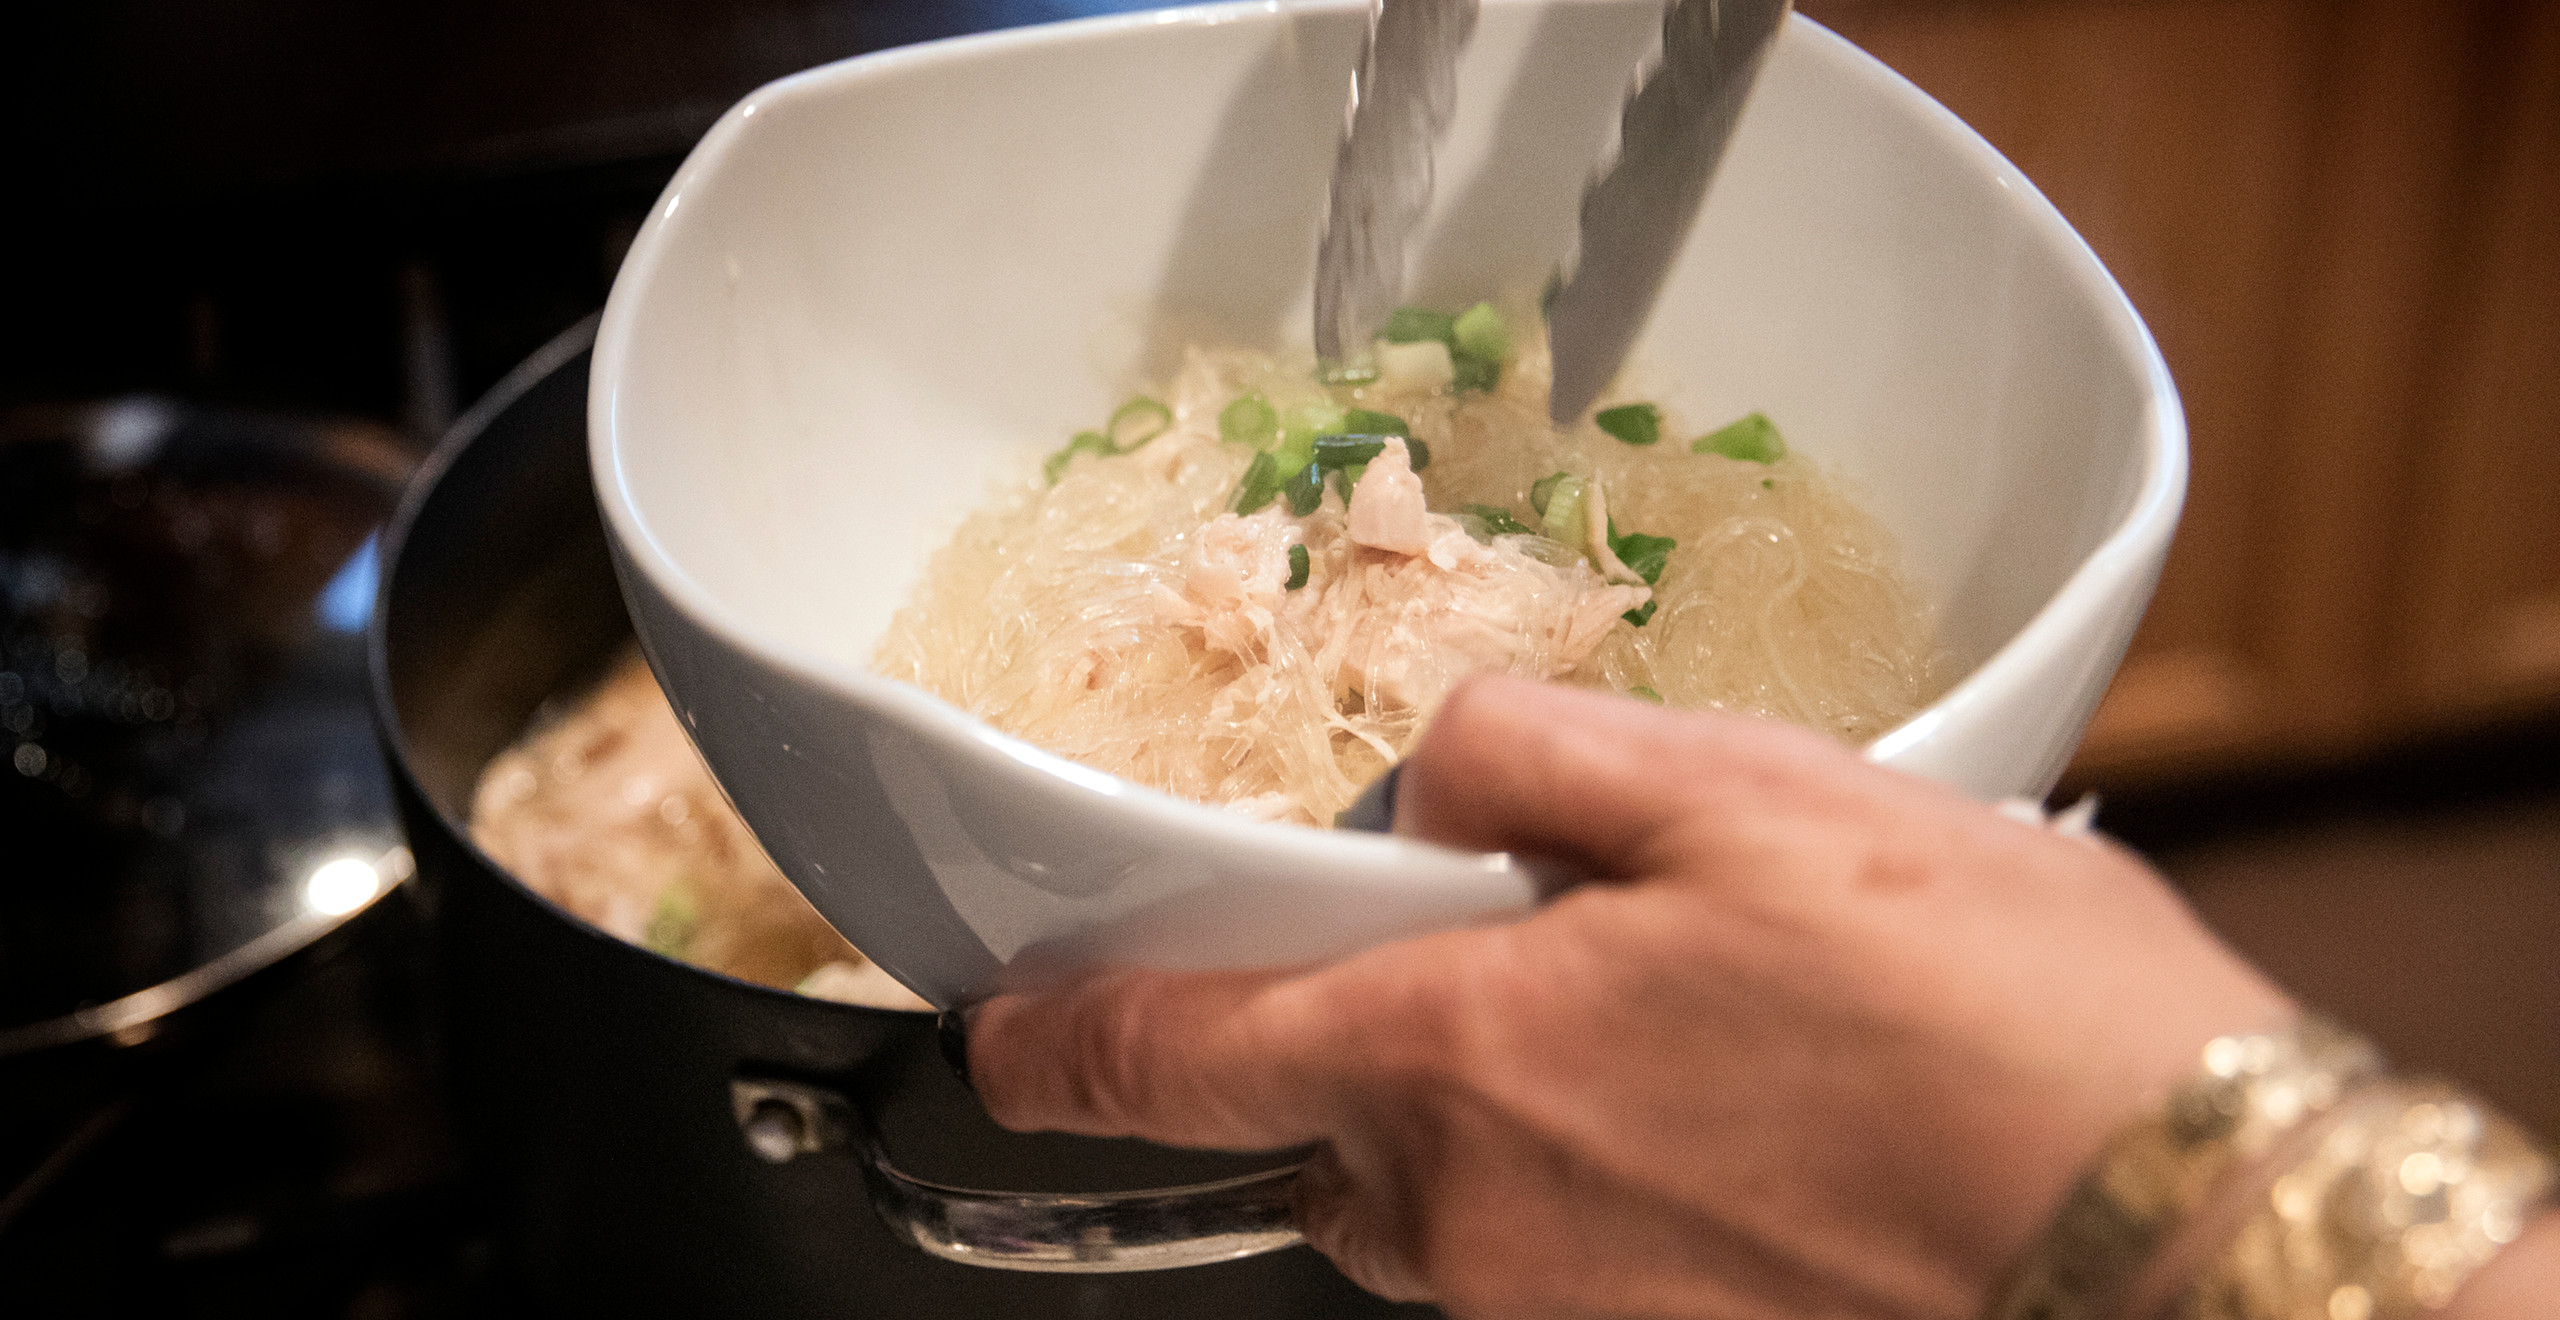 A closeup of Haunani's hands as she transfers the cooked rice noodles, chicken and green onions into a white serving bowl using silver tongs.